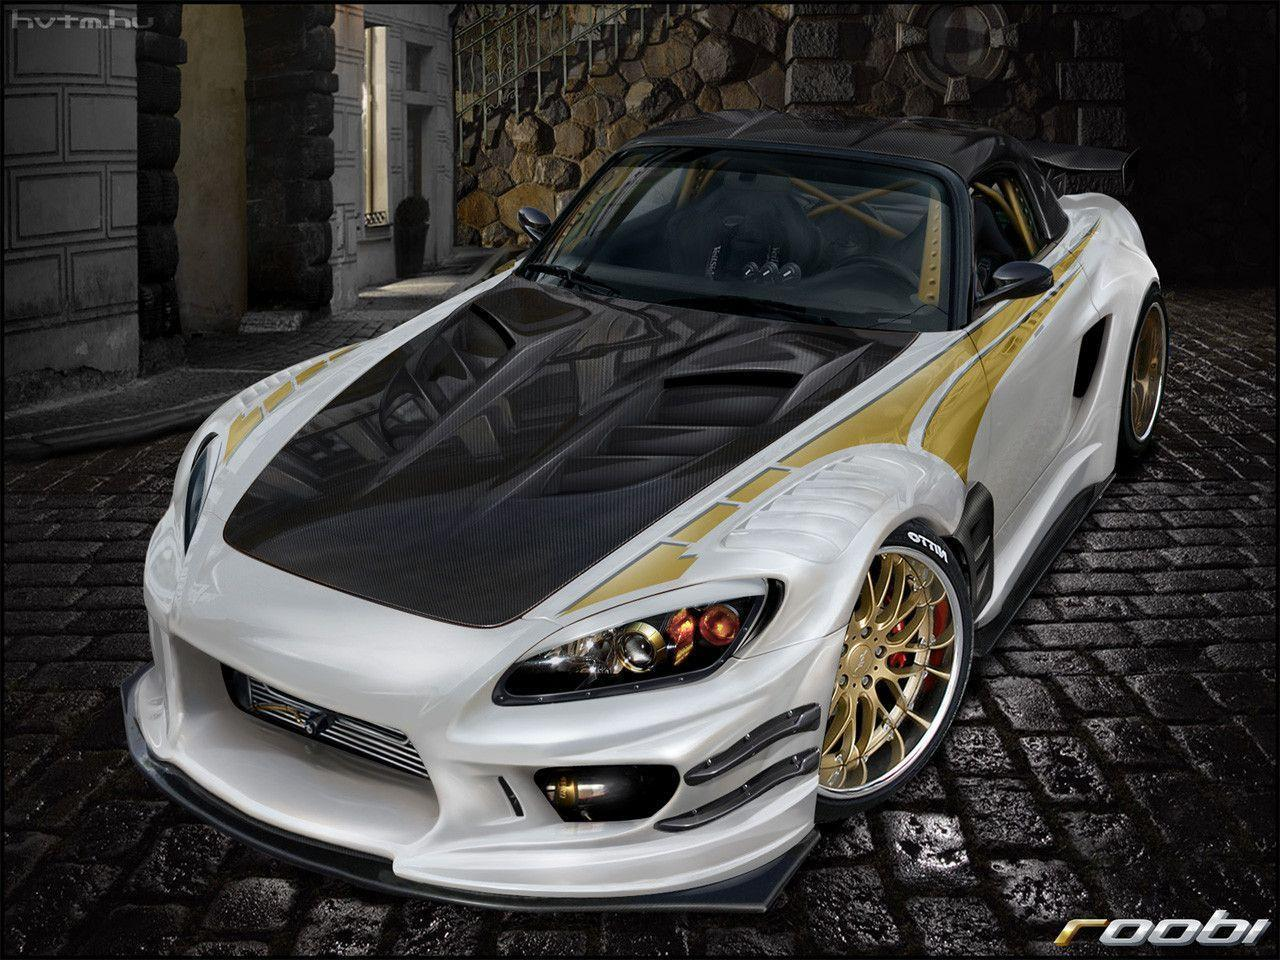 Honda S2000 Free Wallpapers Downloads, Download S2000 Wallpapers